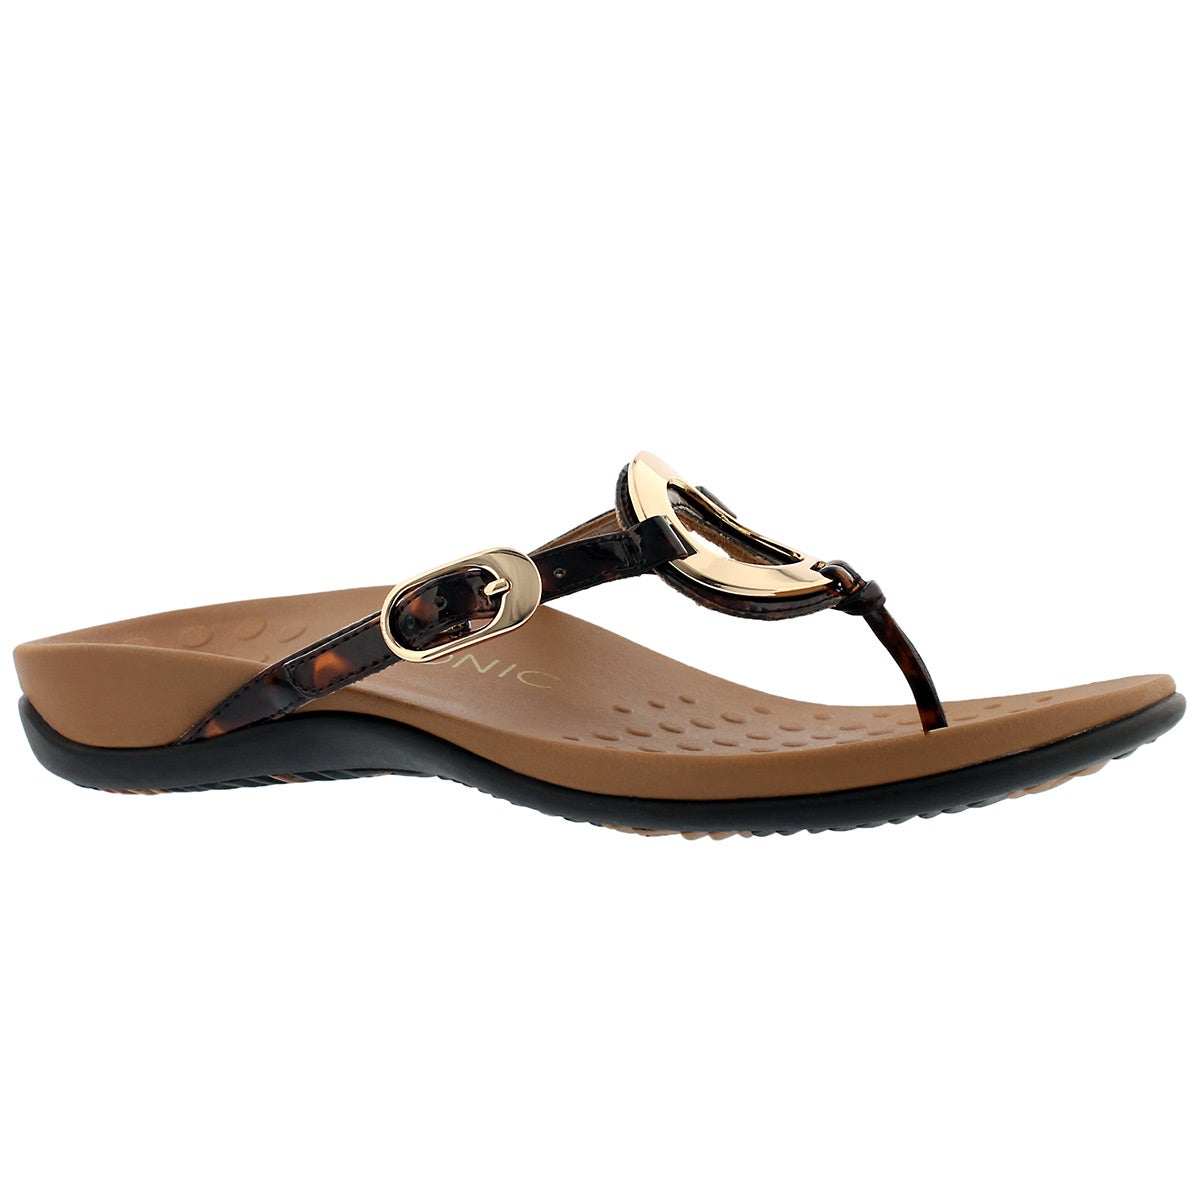 Women's KARINA tortoise arch support thong sandals